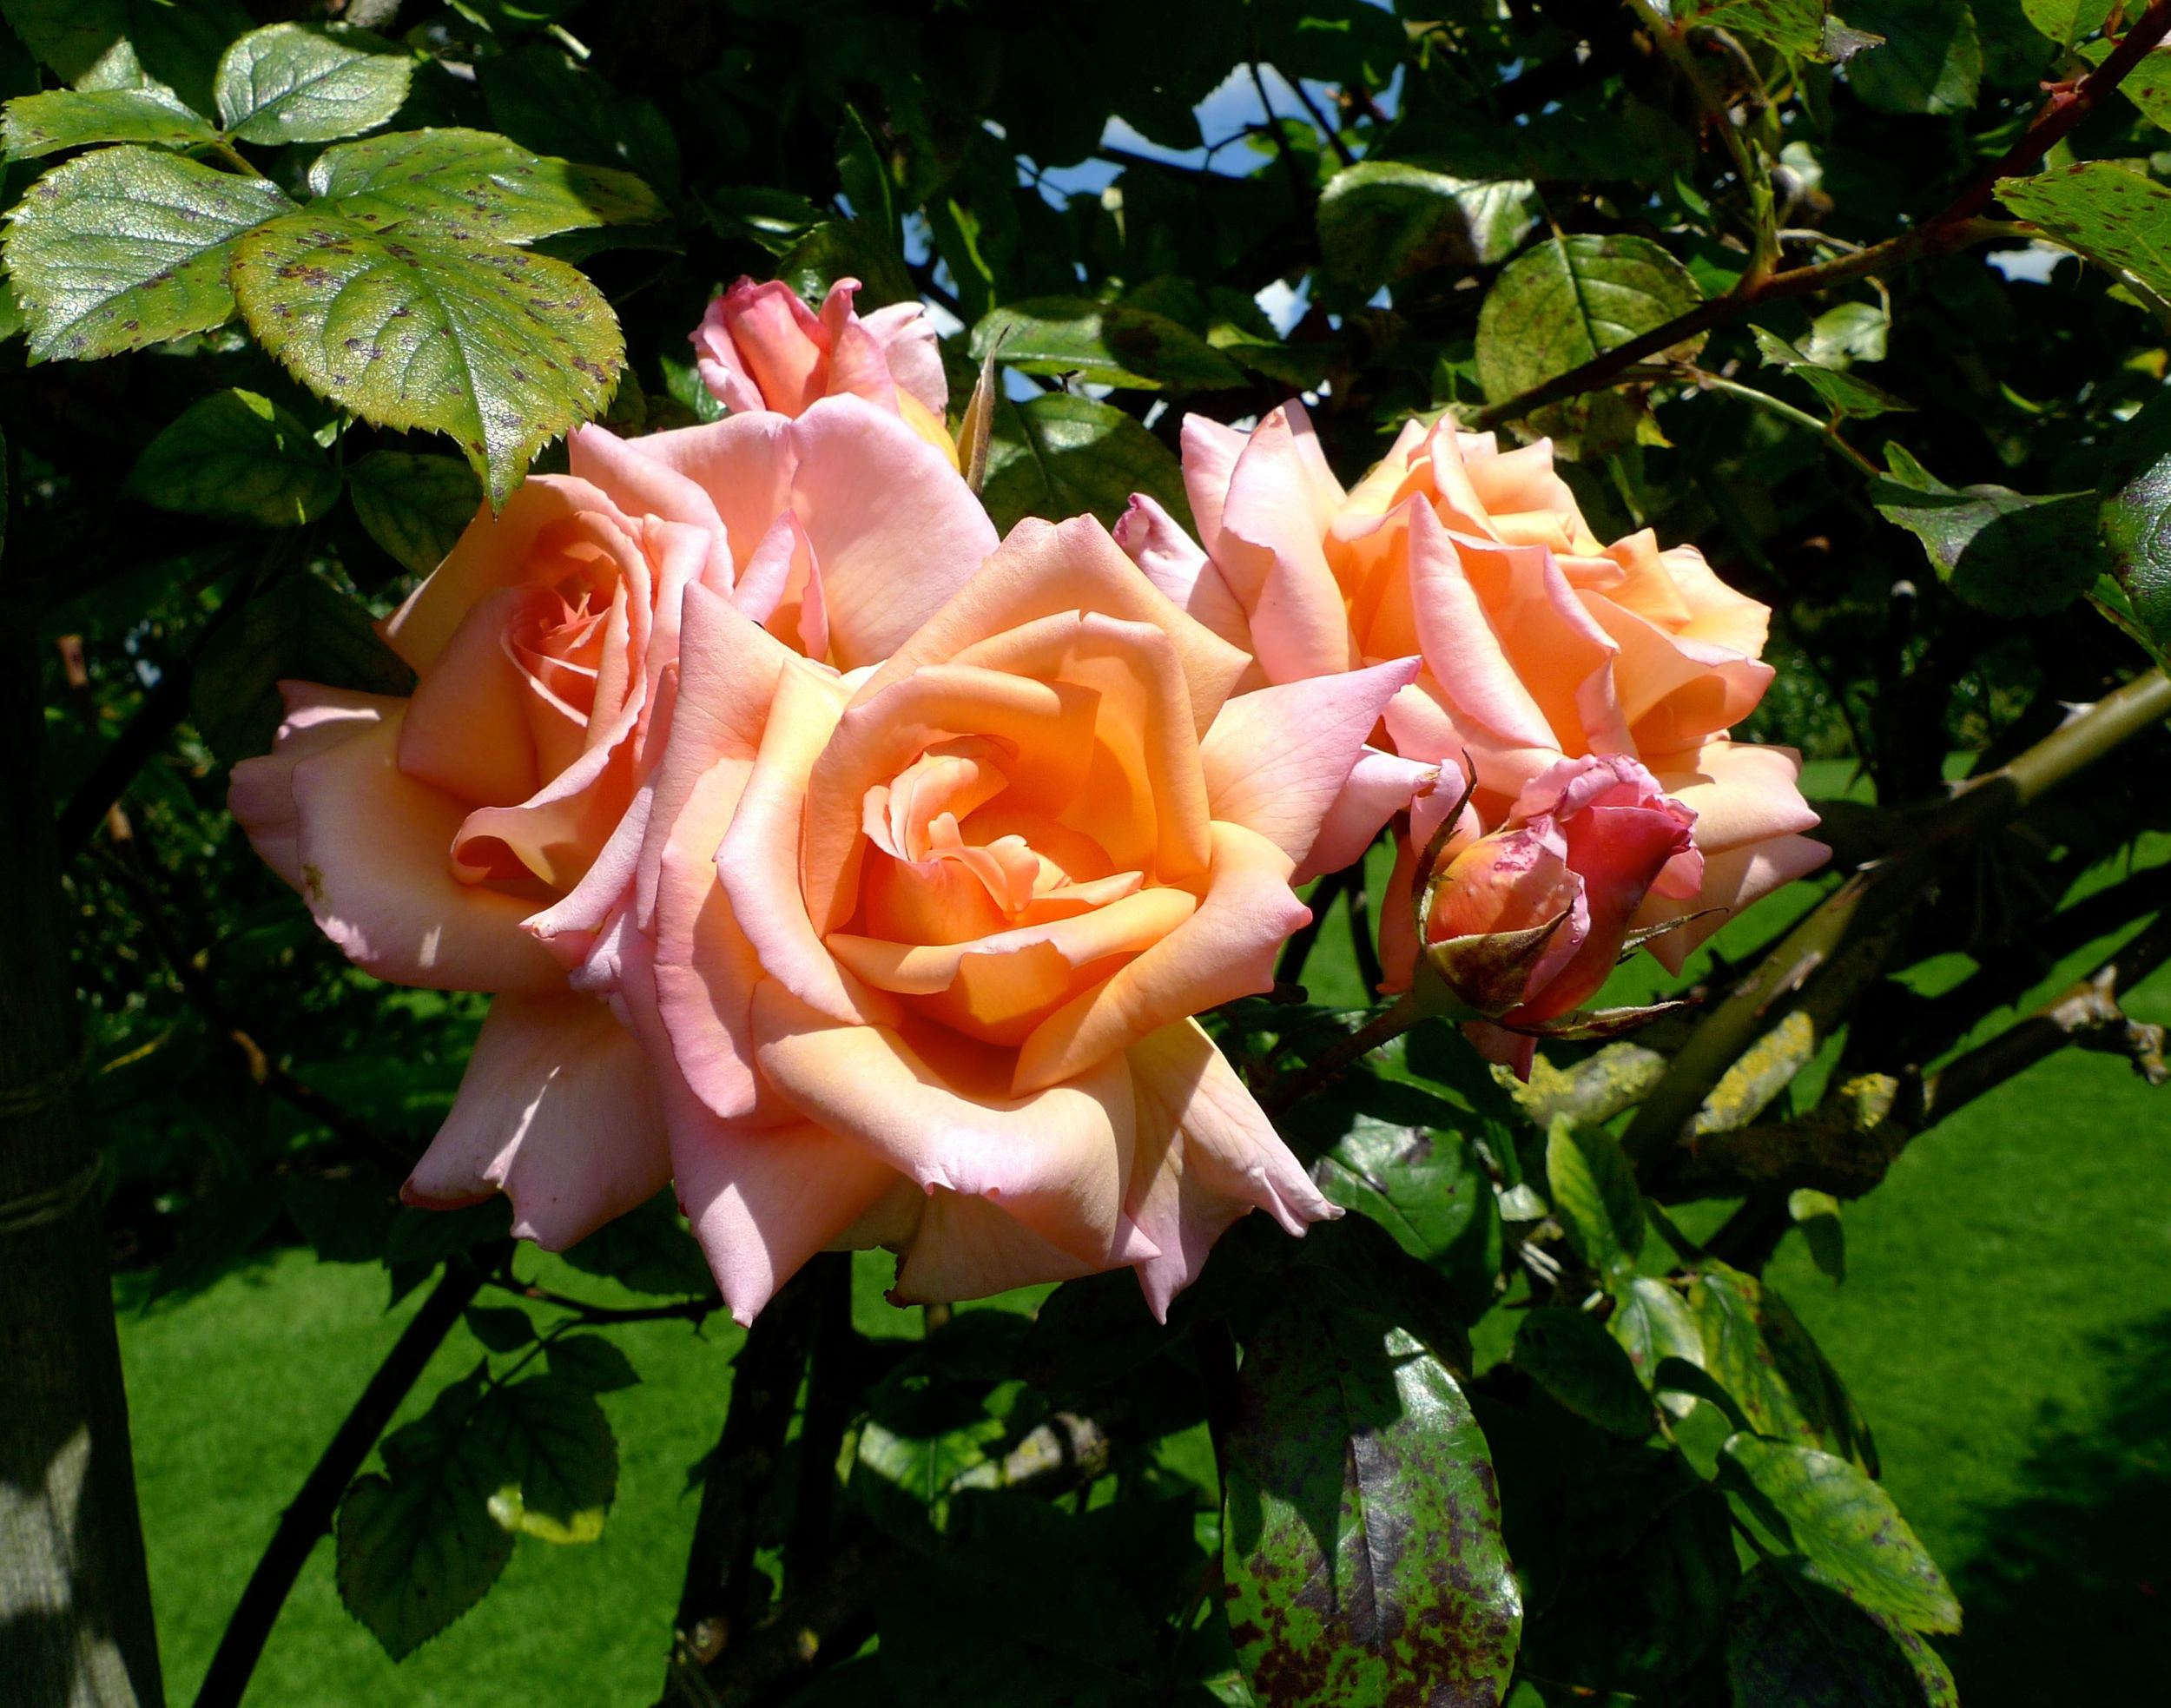 peachy pink tea roses